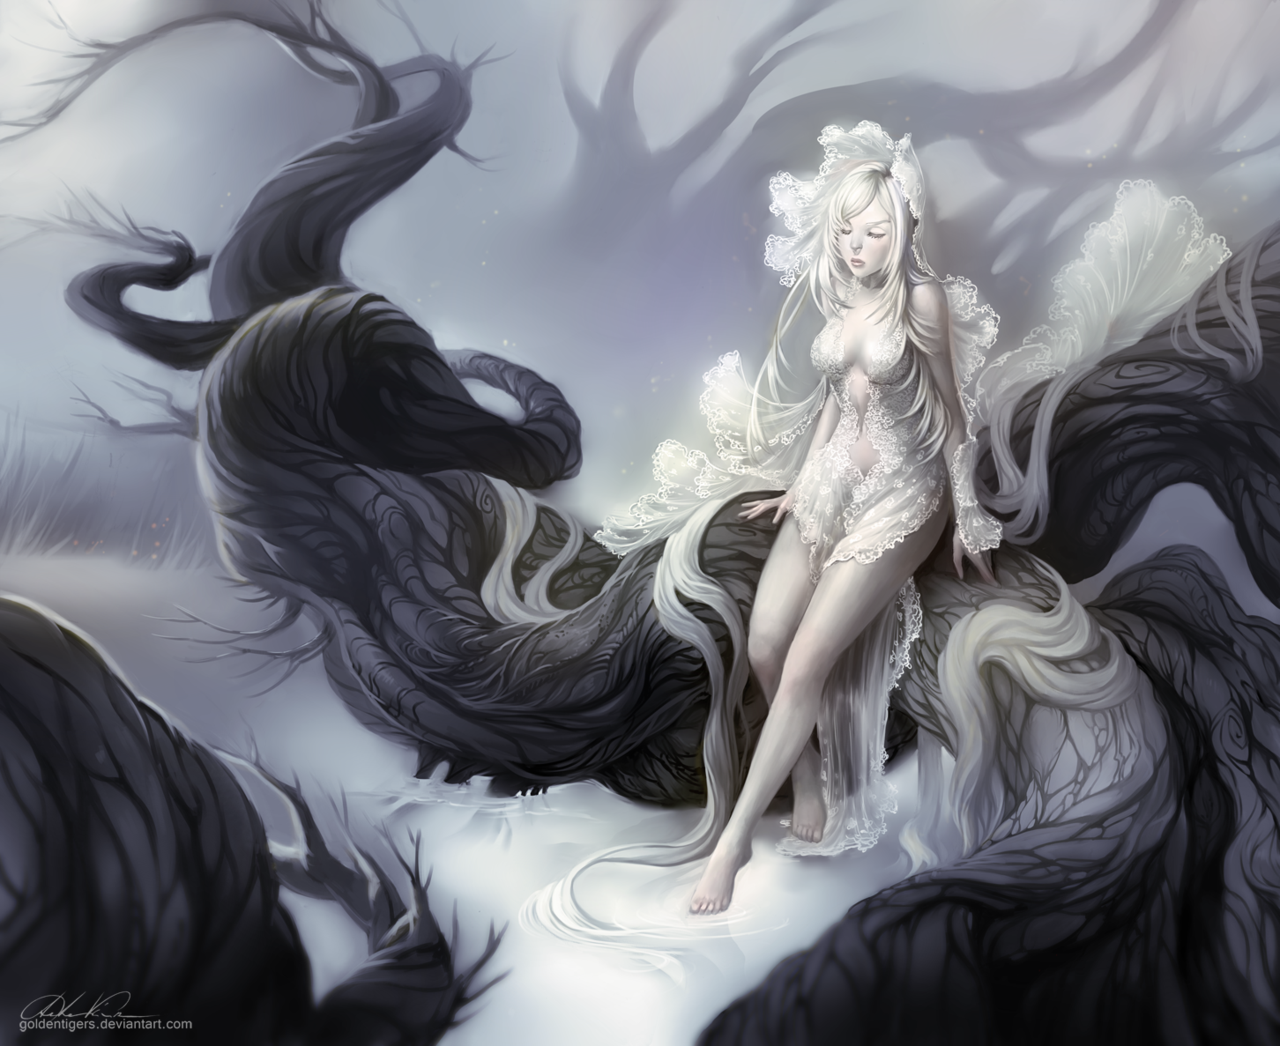 Witch of the northern forest by goldentigers.deviantart.com on @deviantART